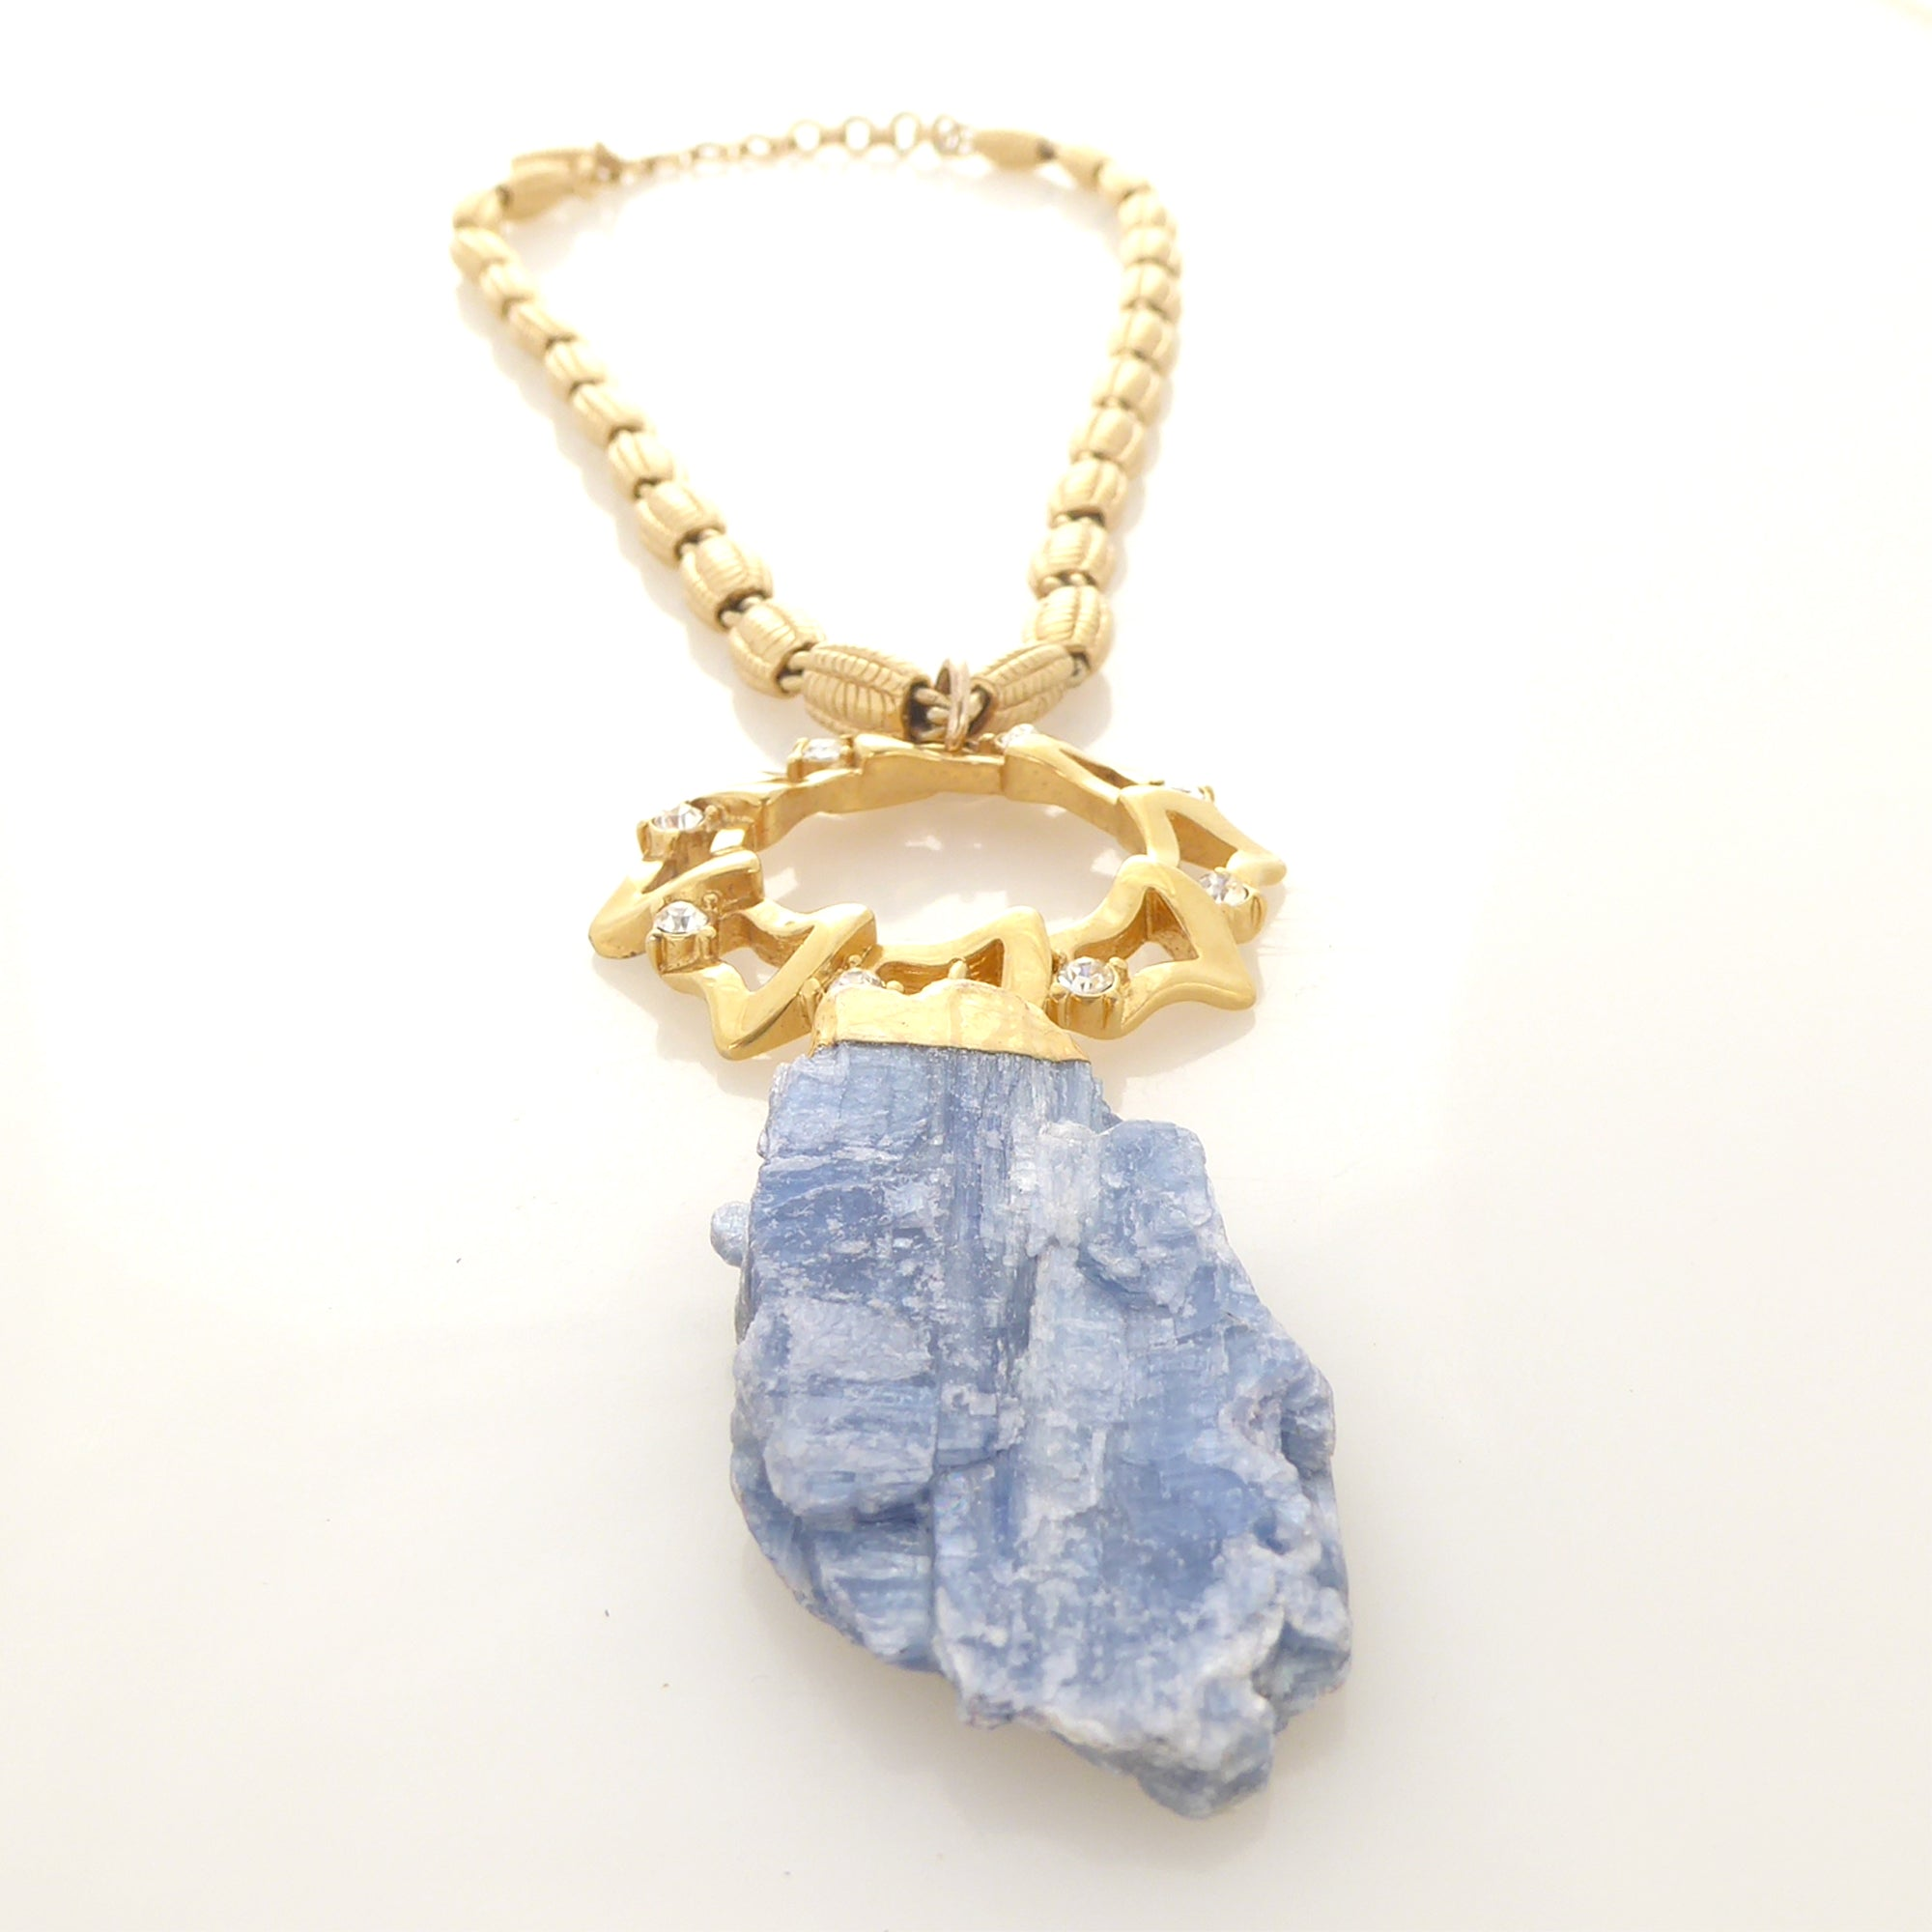 Blue kyanite pendant necklace